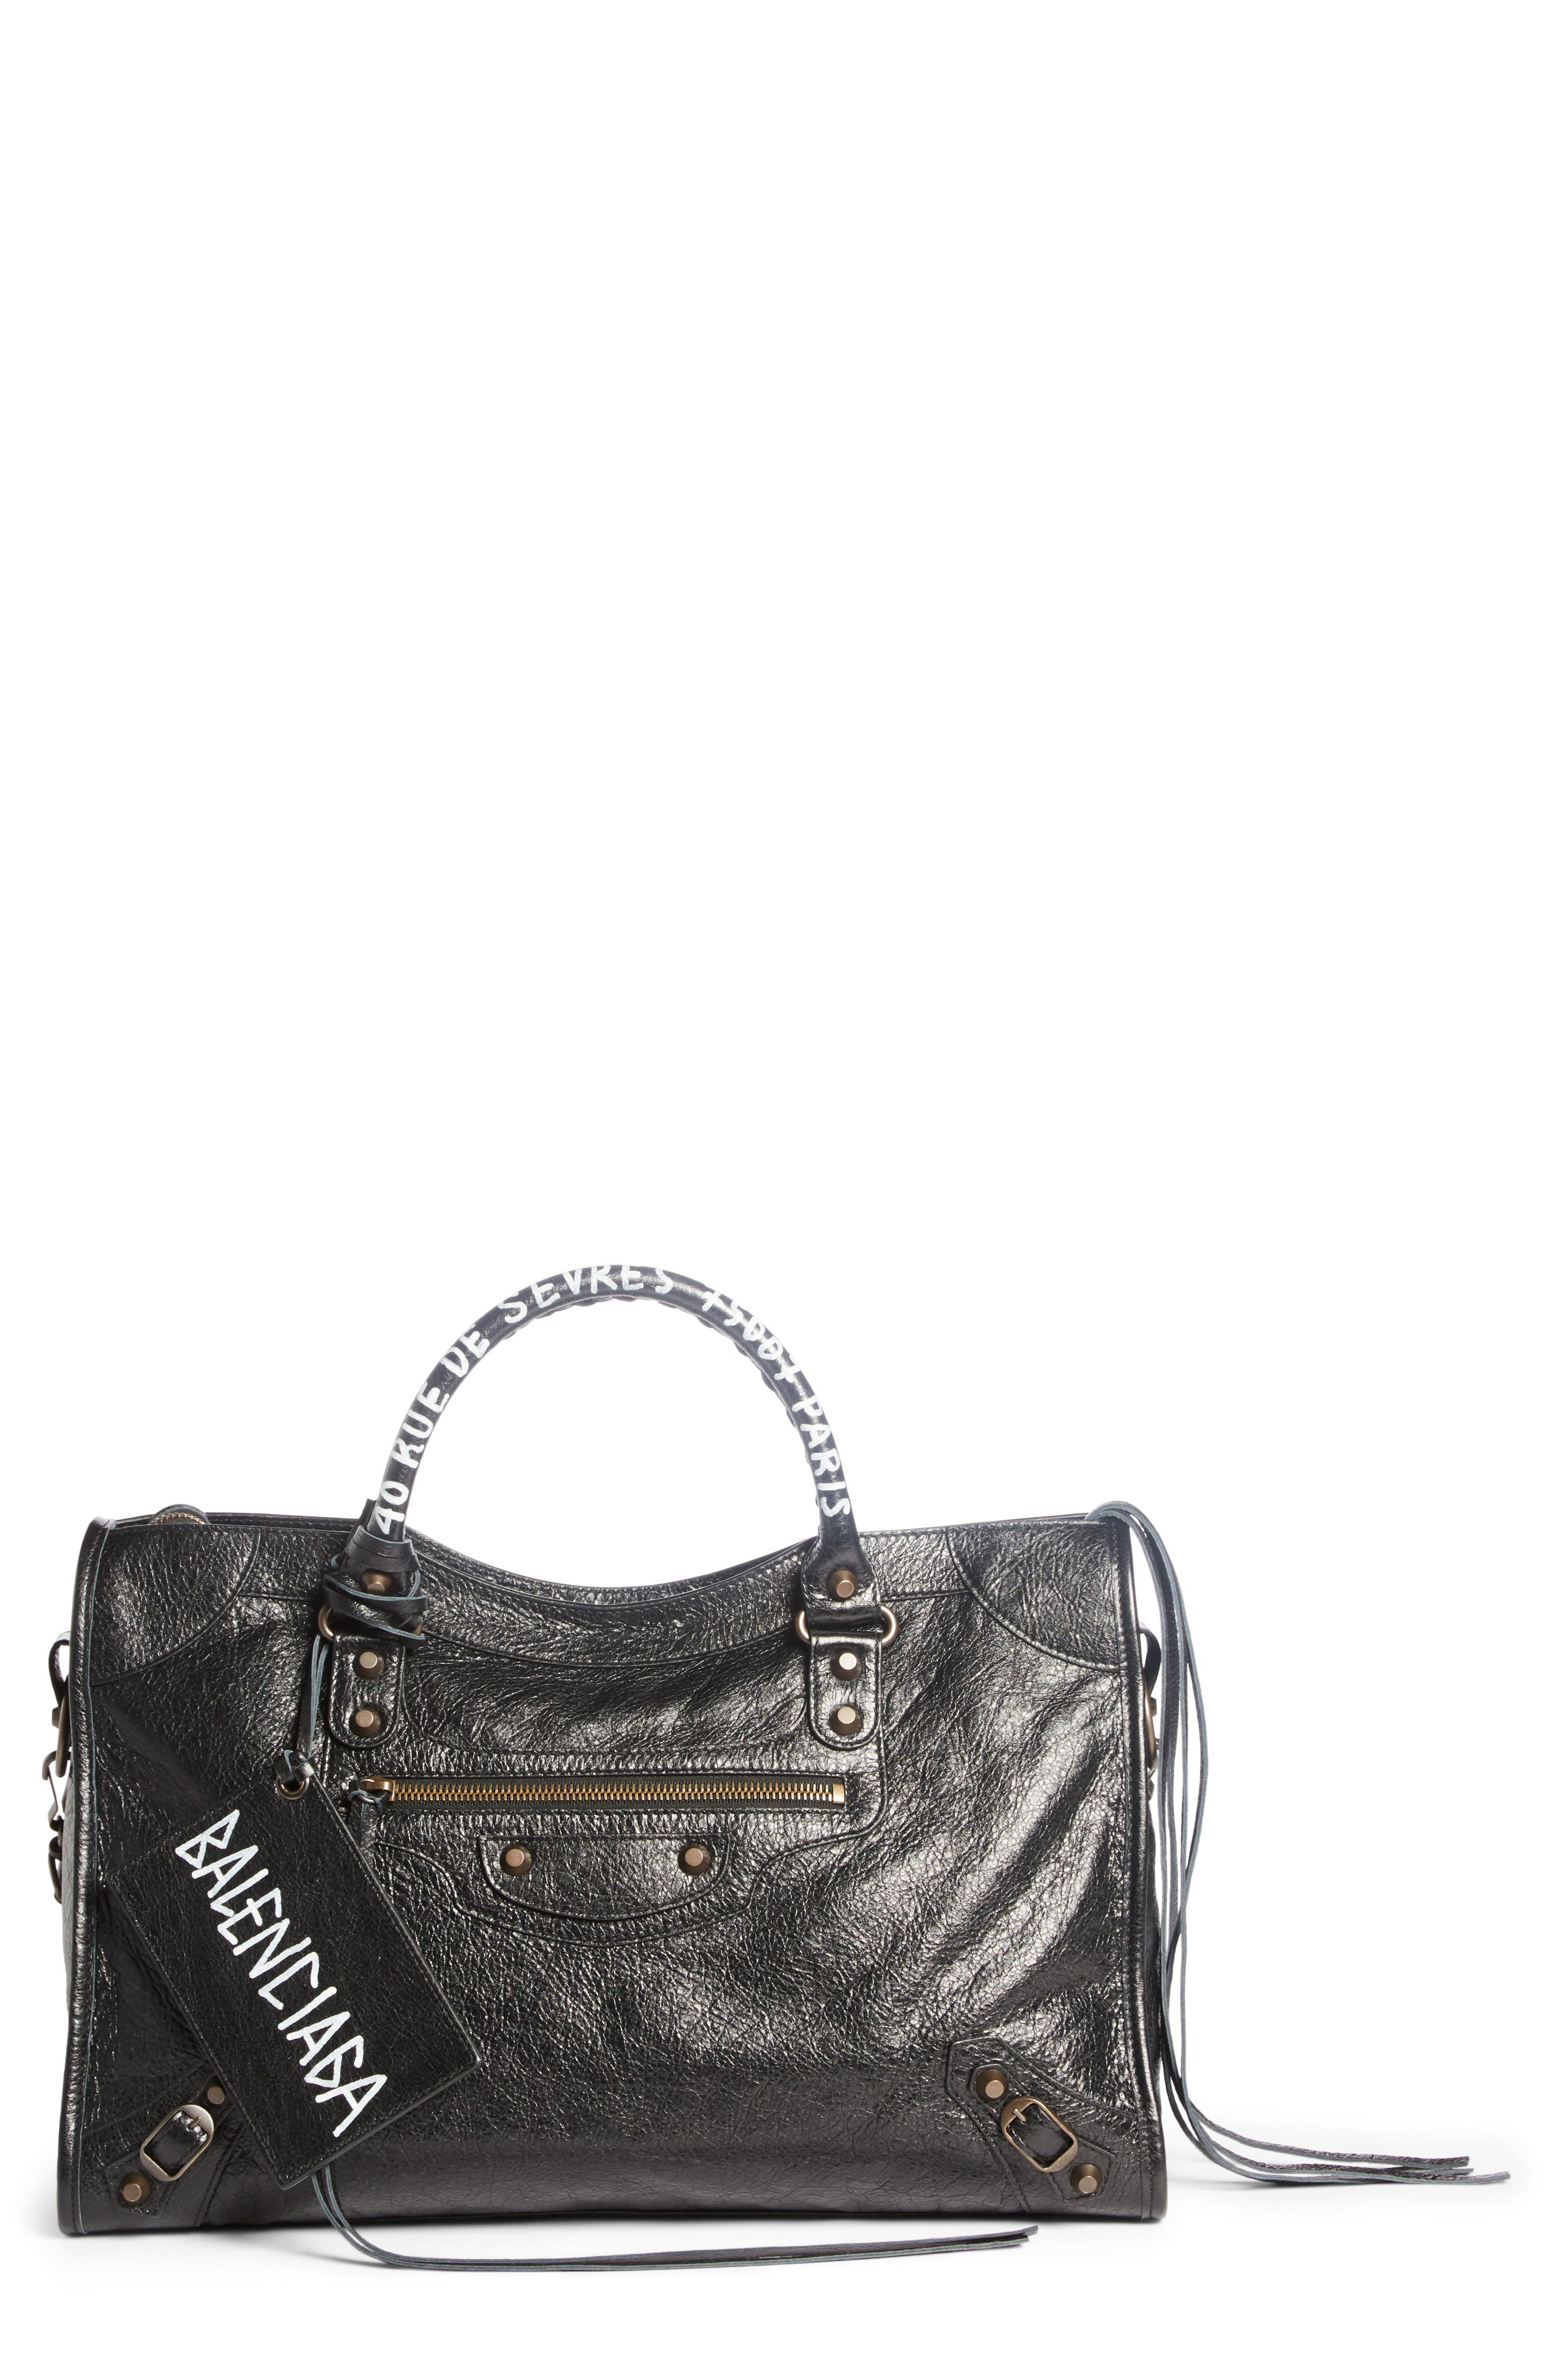 Balenciaga  CLASSIC CITY LEATHER TOTE - BLACK